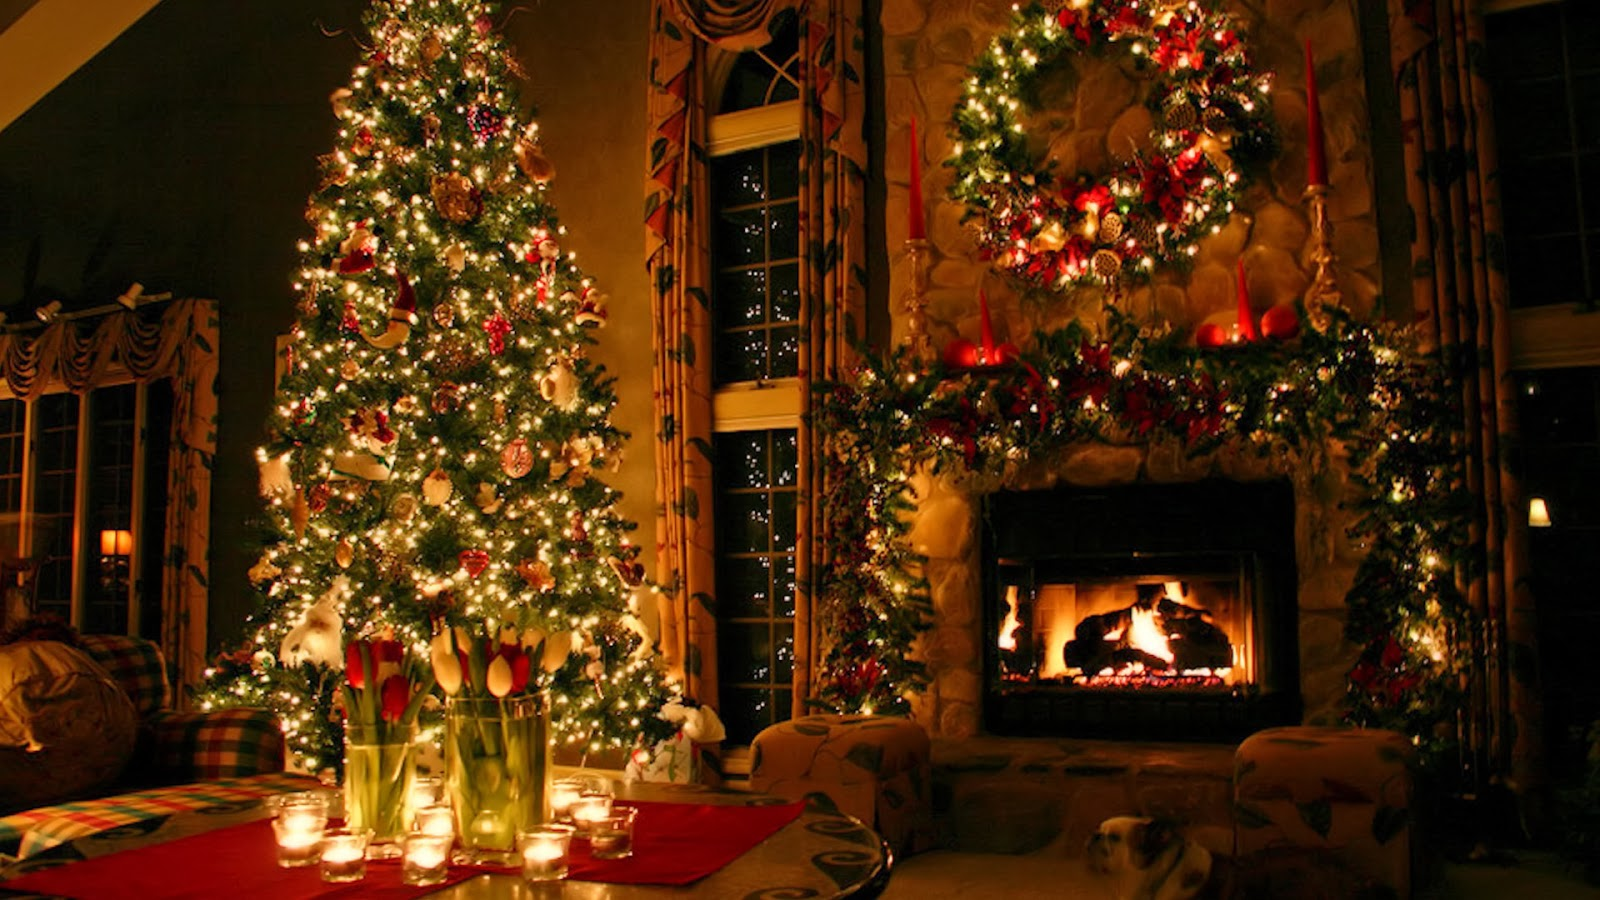 Christmas decorations ideas world top blogger for Home decorations for christmas